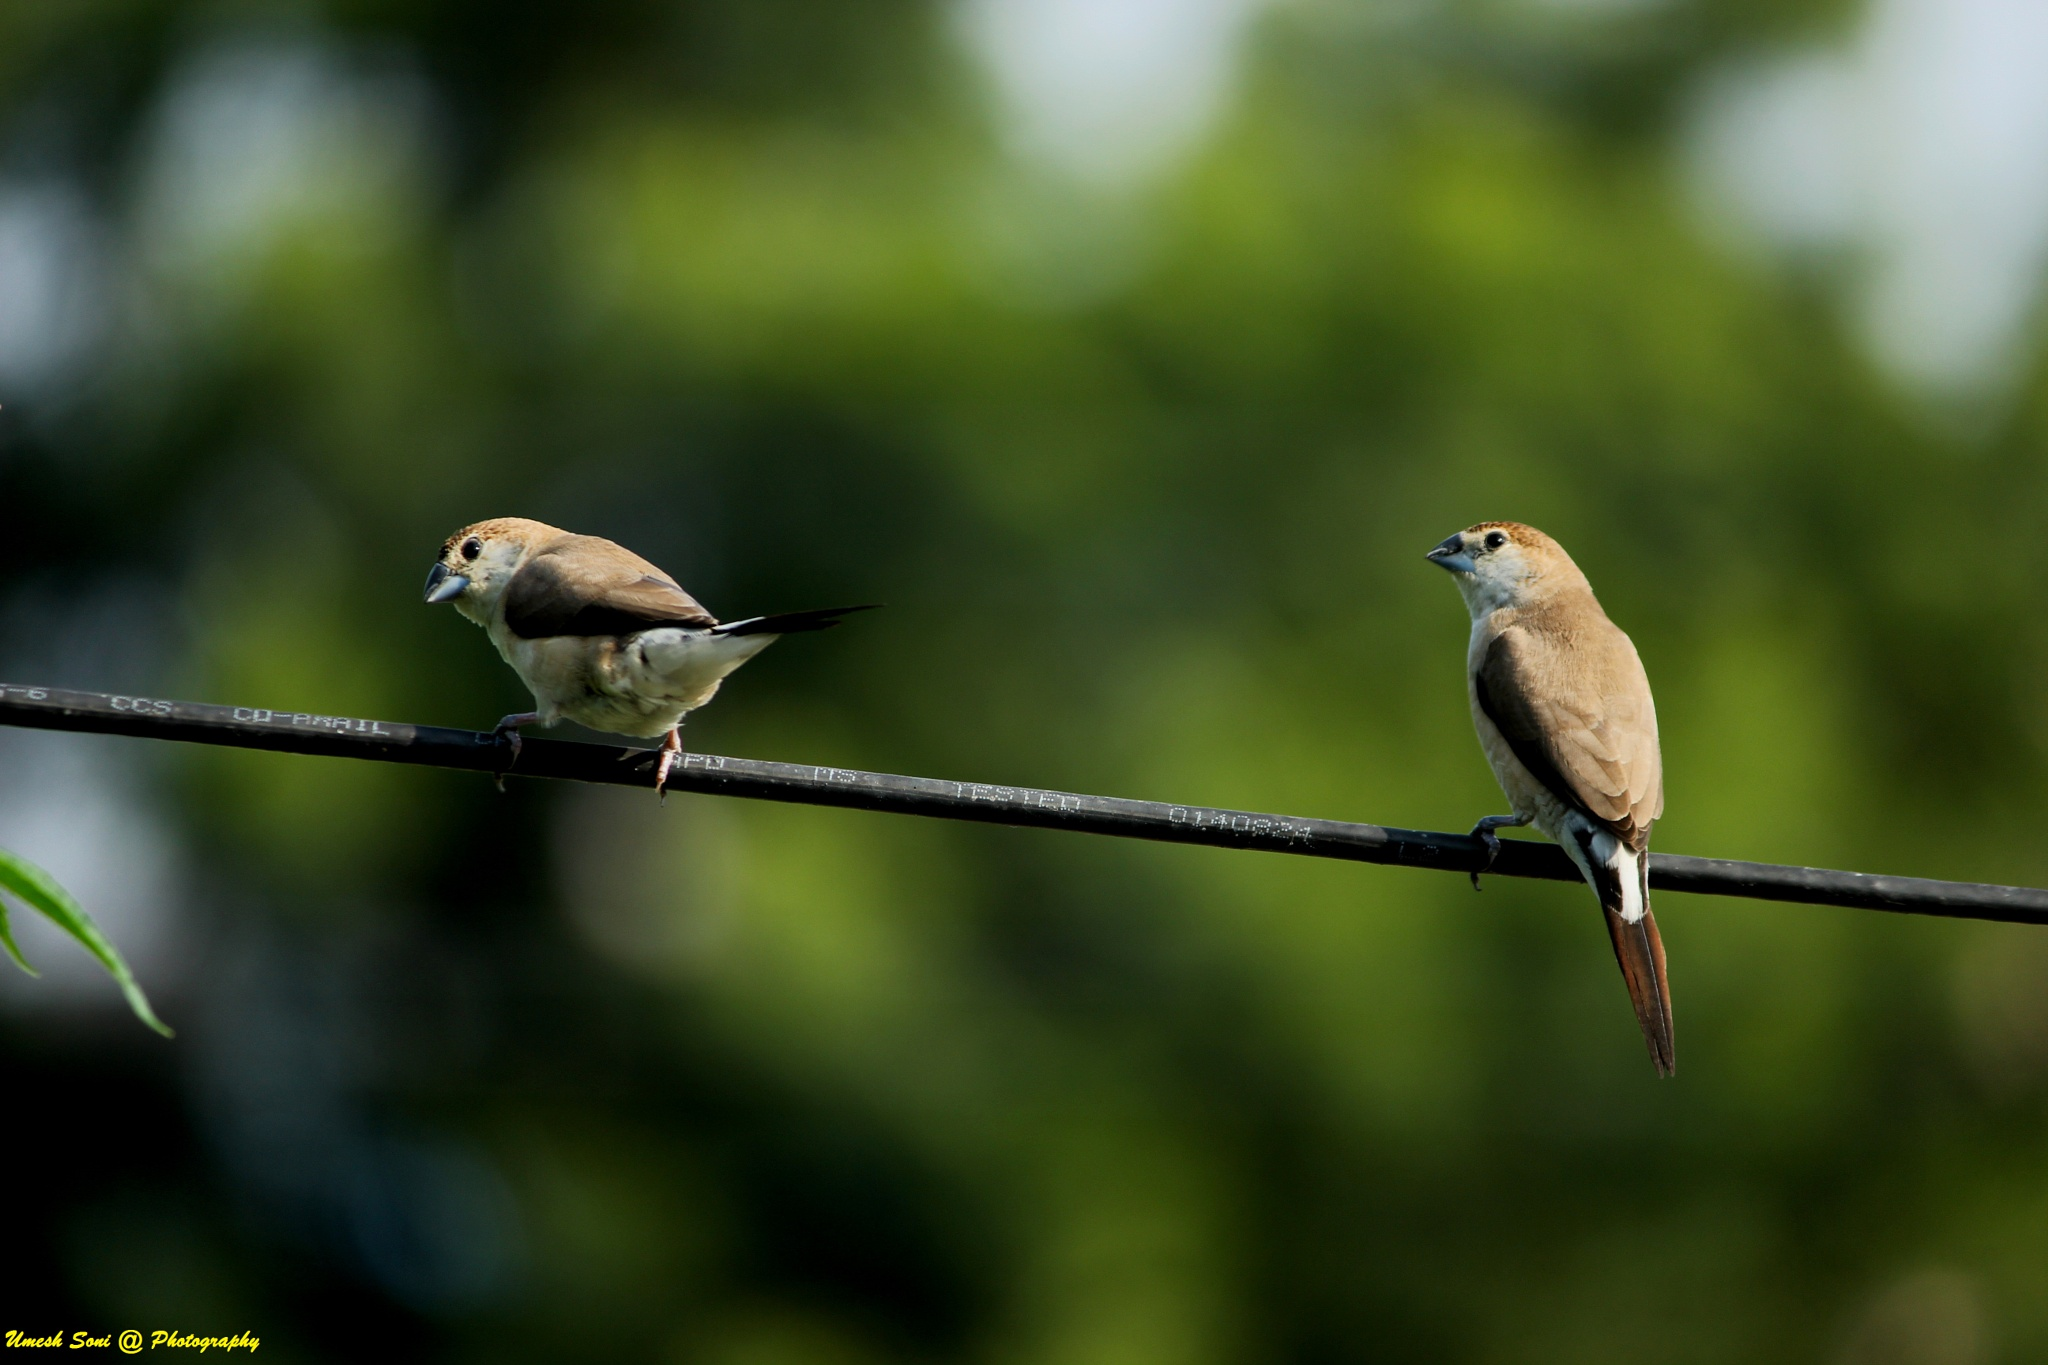 Untitled by Umesh Soni